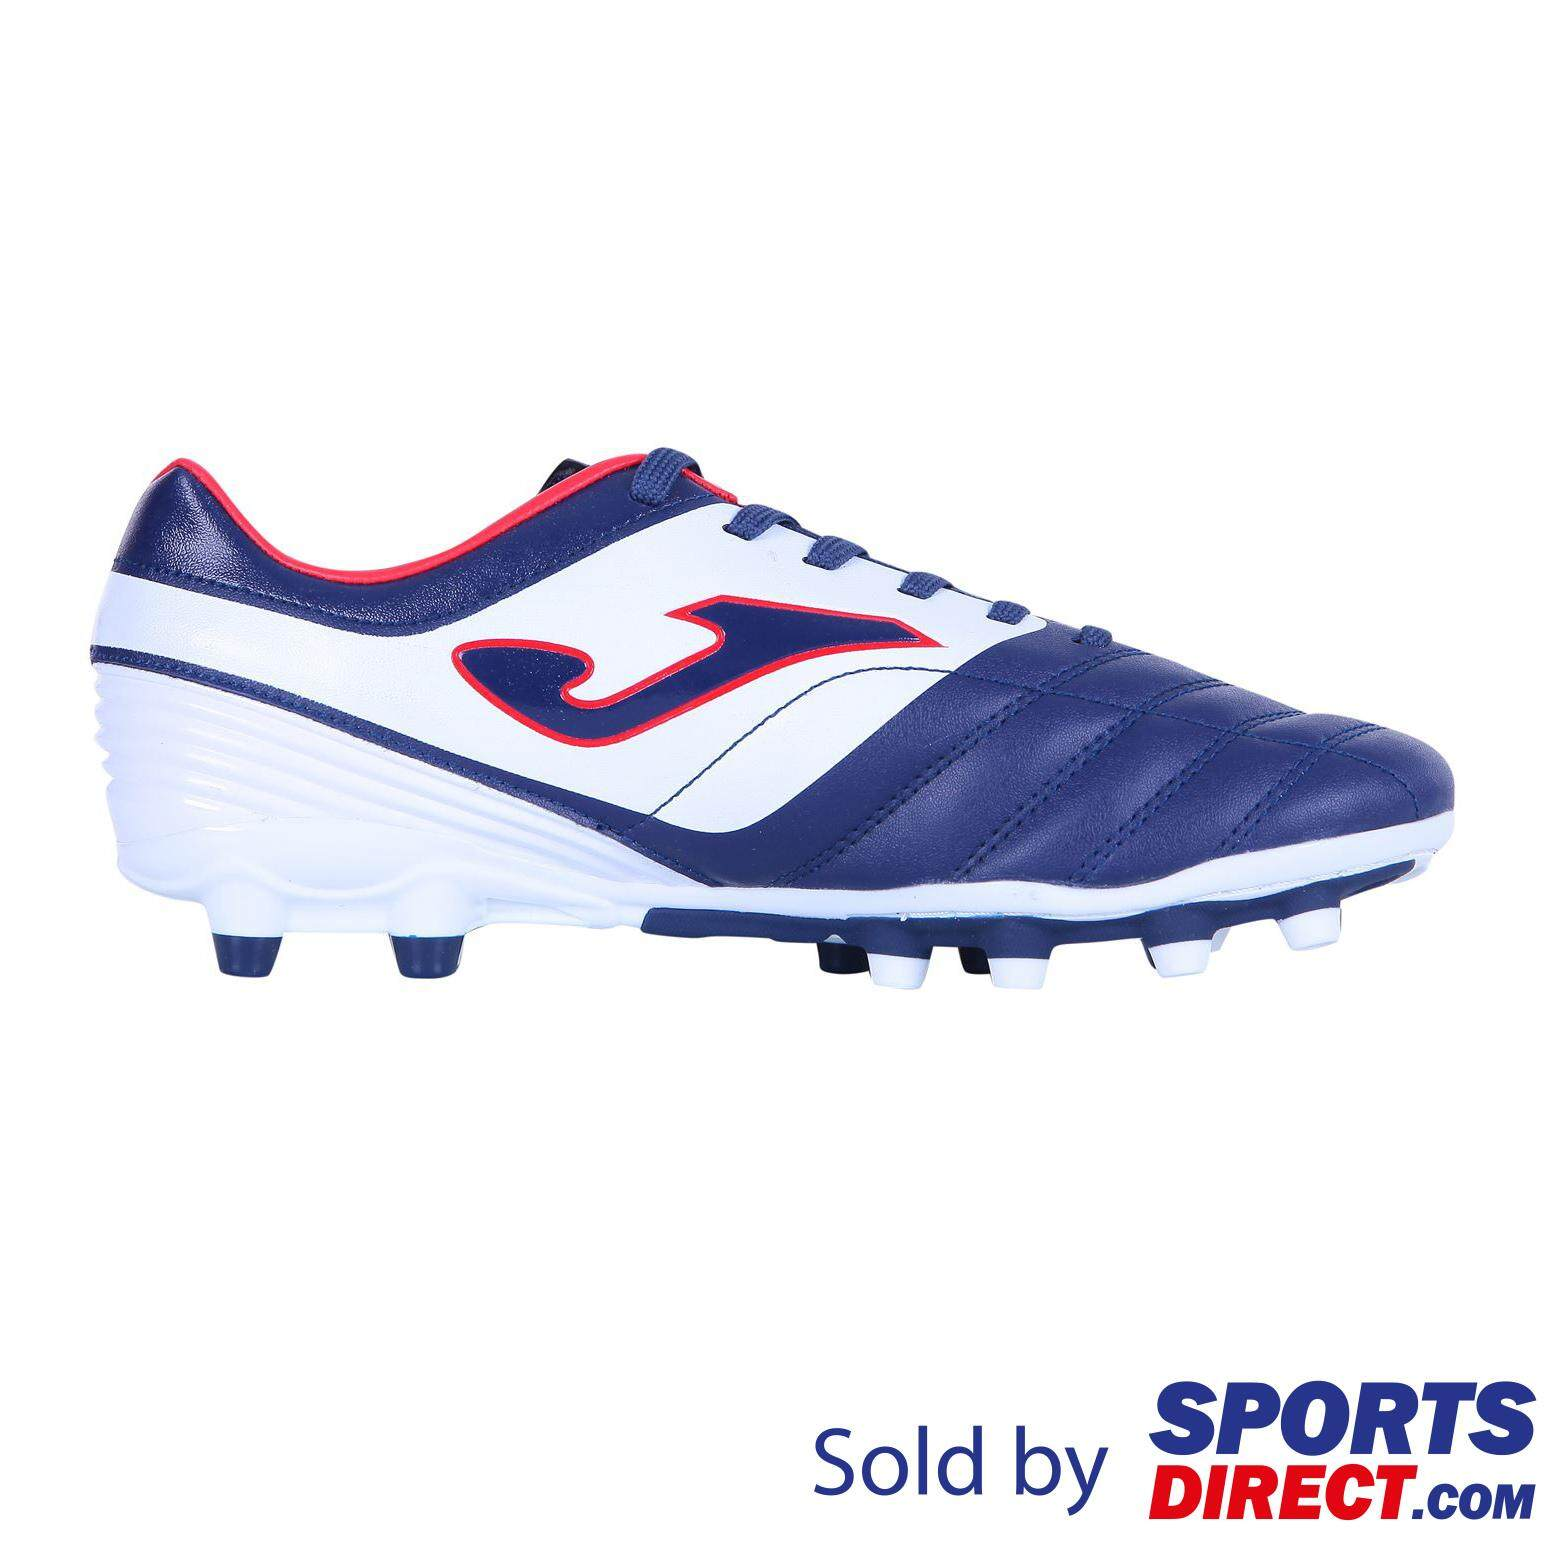 09b81bdf9021 Joma Men's Football Shoes price in Malaysia - Best Joma Men's ...